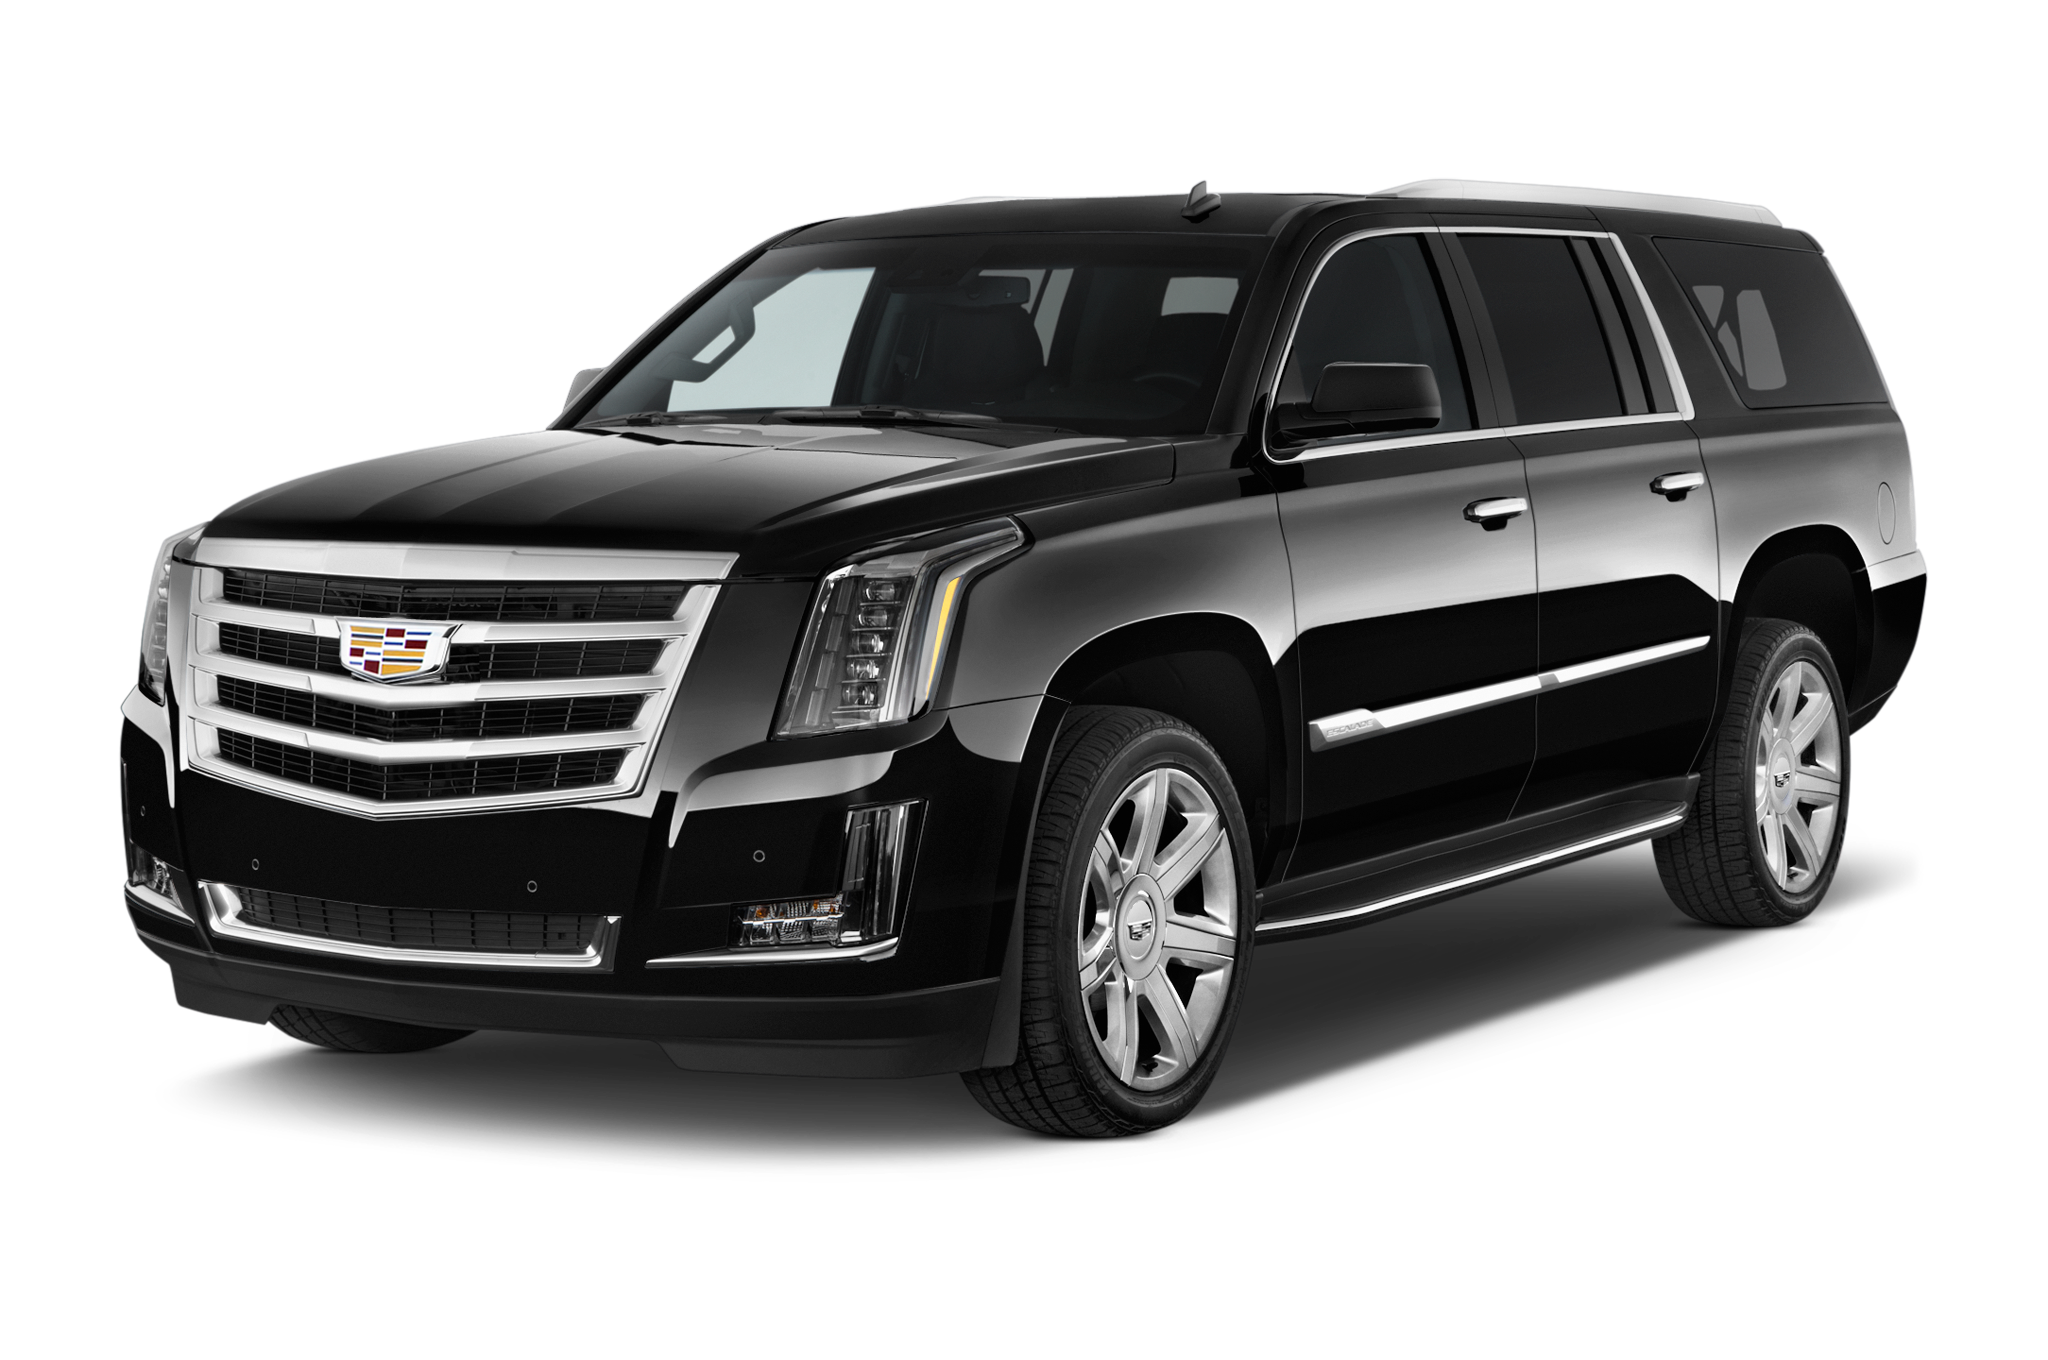 2017 Cadillac Escalade Esv Msrp >> Cadillac CUE Adds Apple CarPlay, Android Auto for 2016